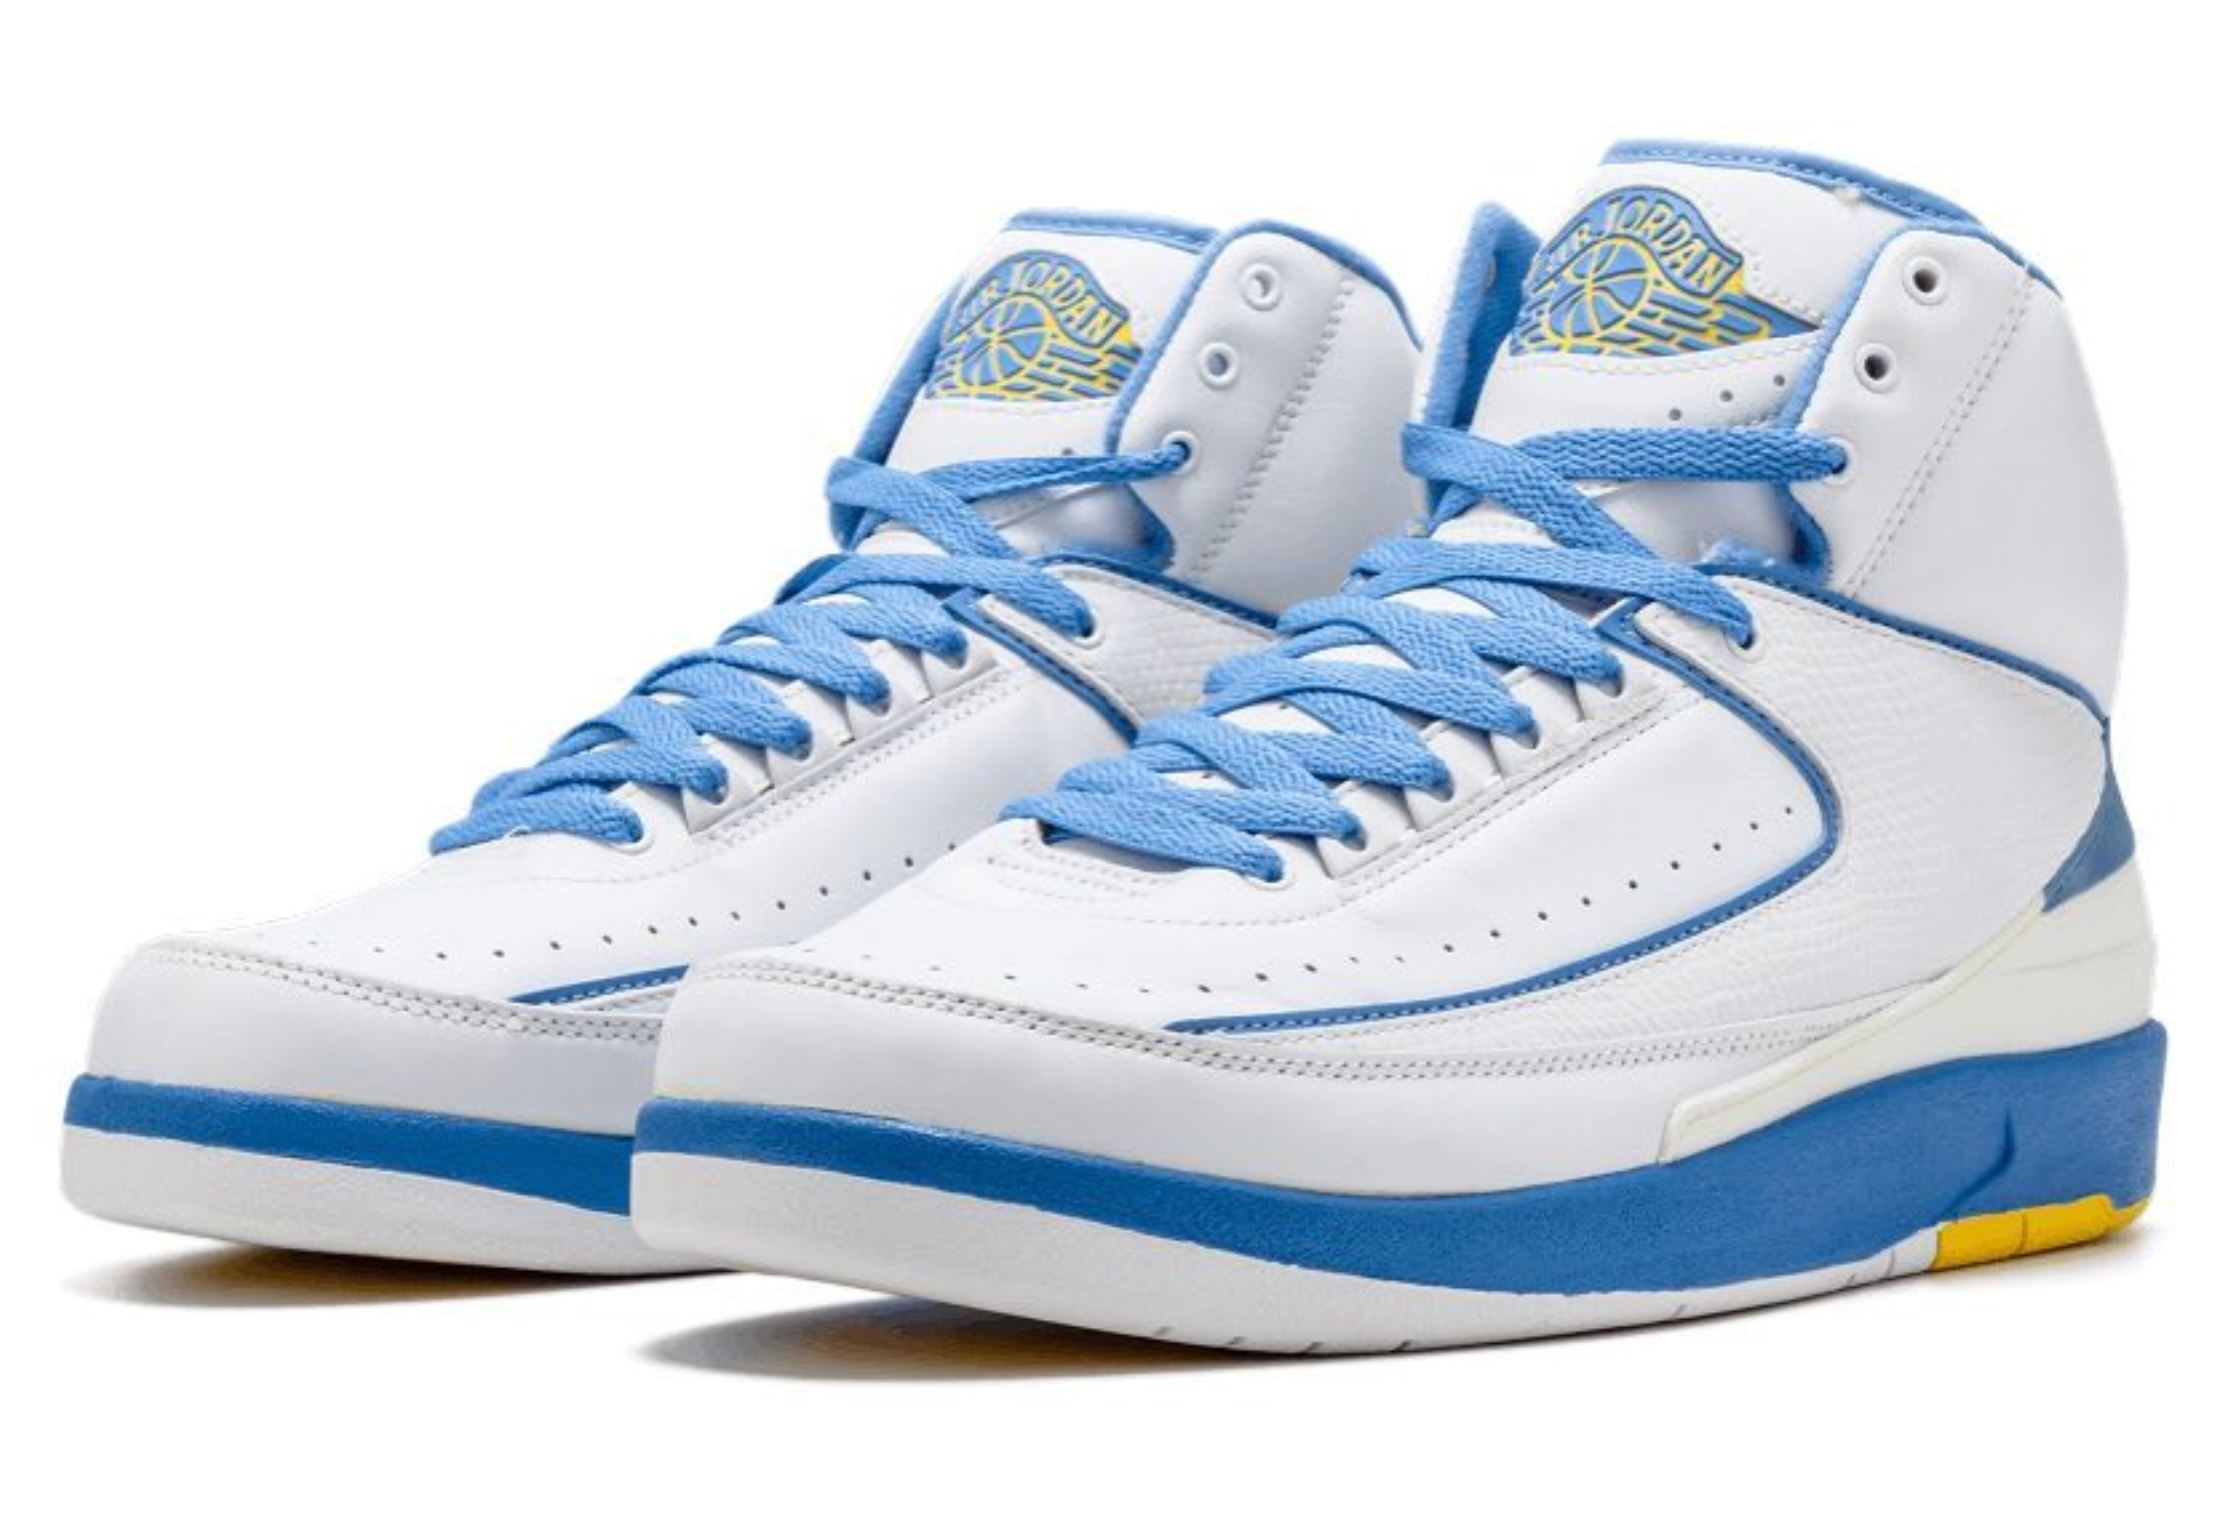 buy popular b7ec3 bf548 Carmelo Anthony's Air Jordan 2 'Melo' Will Return Next Month ...